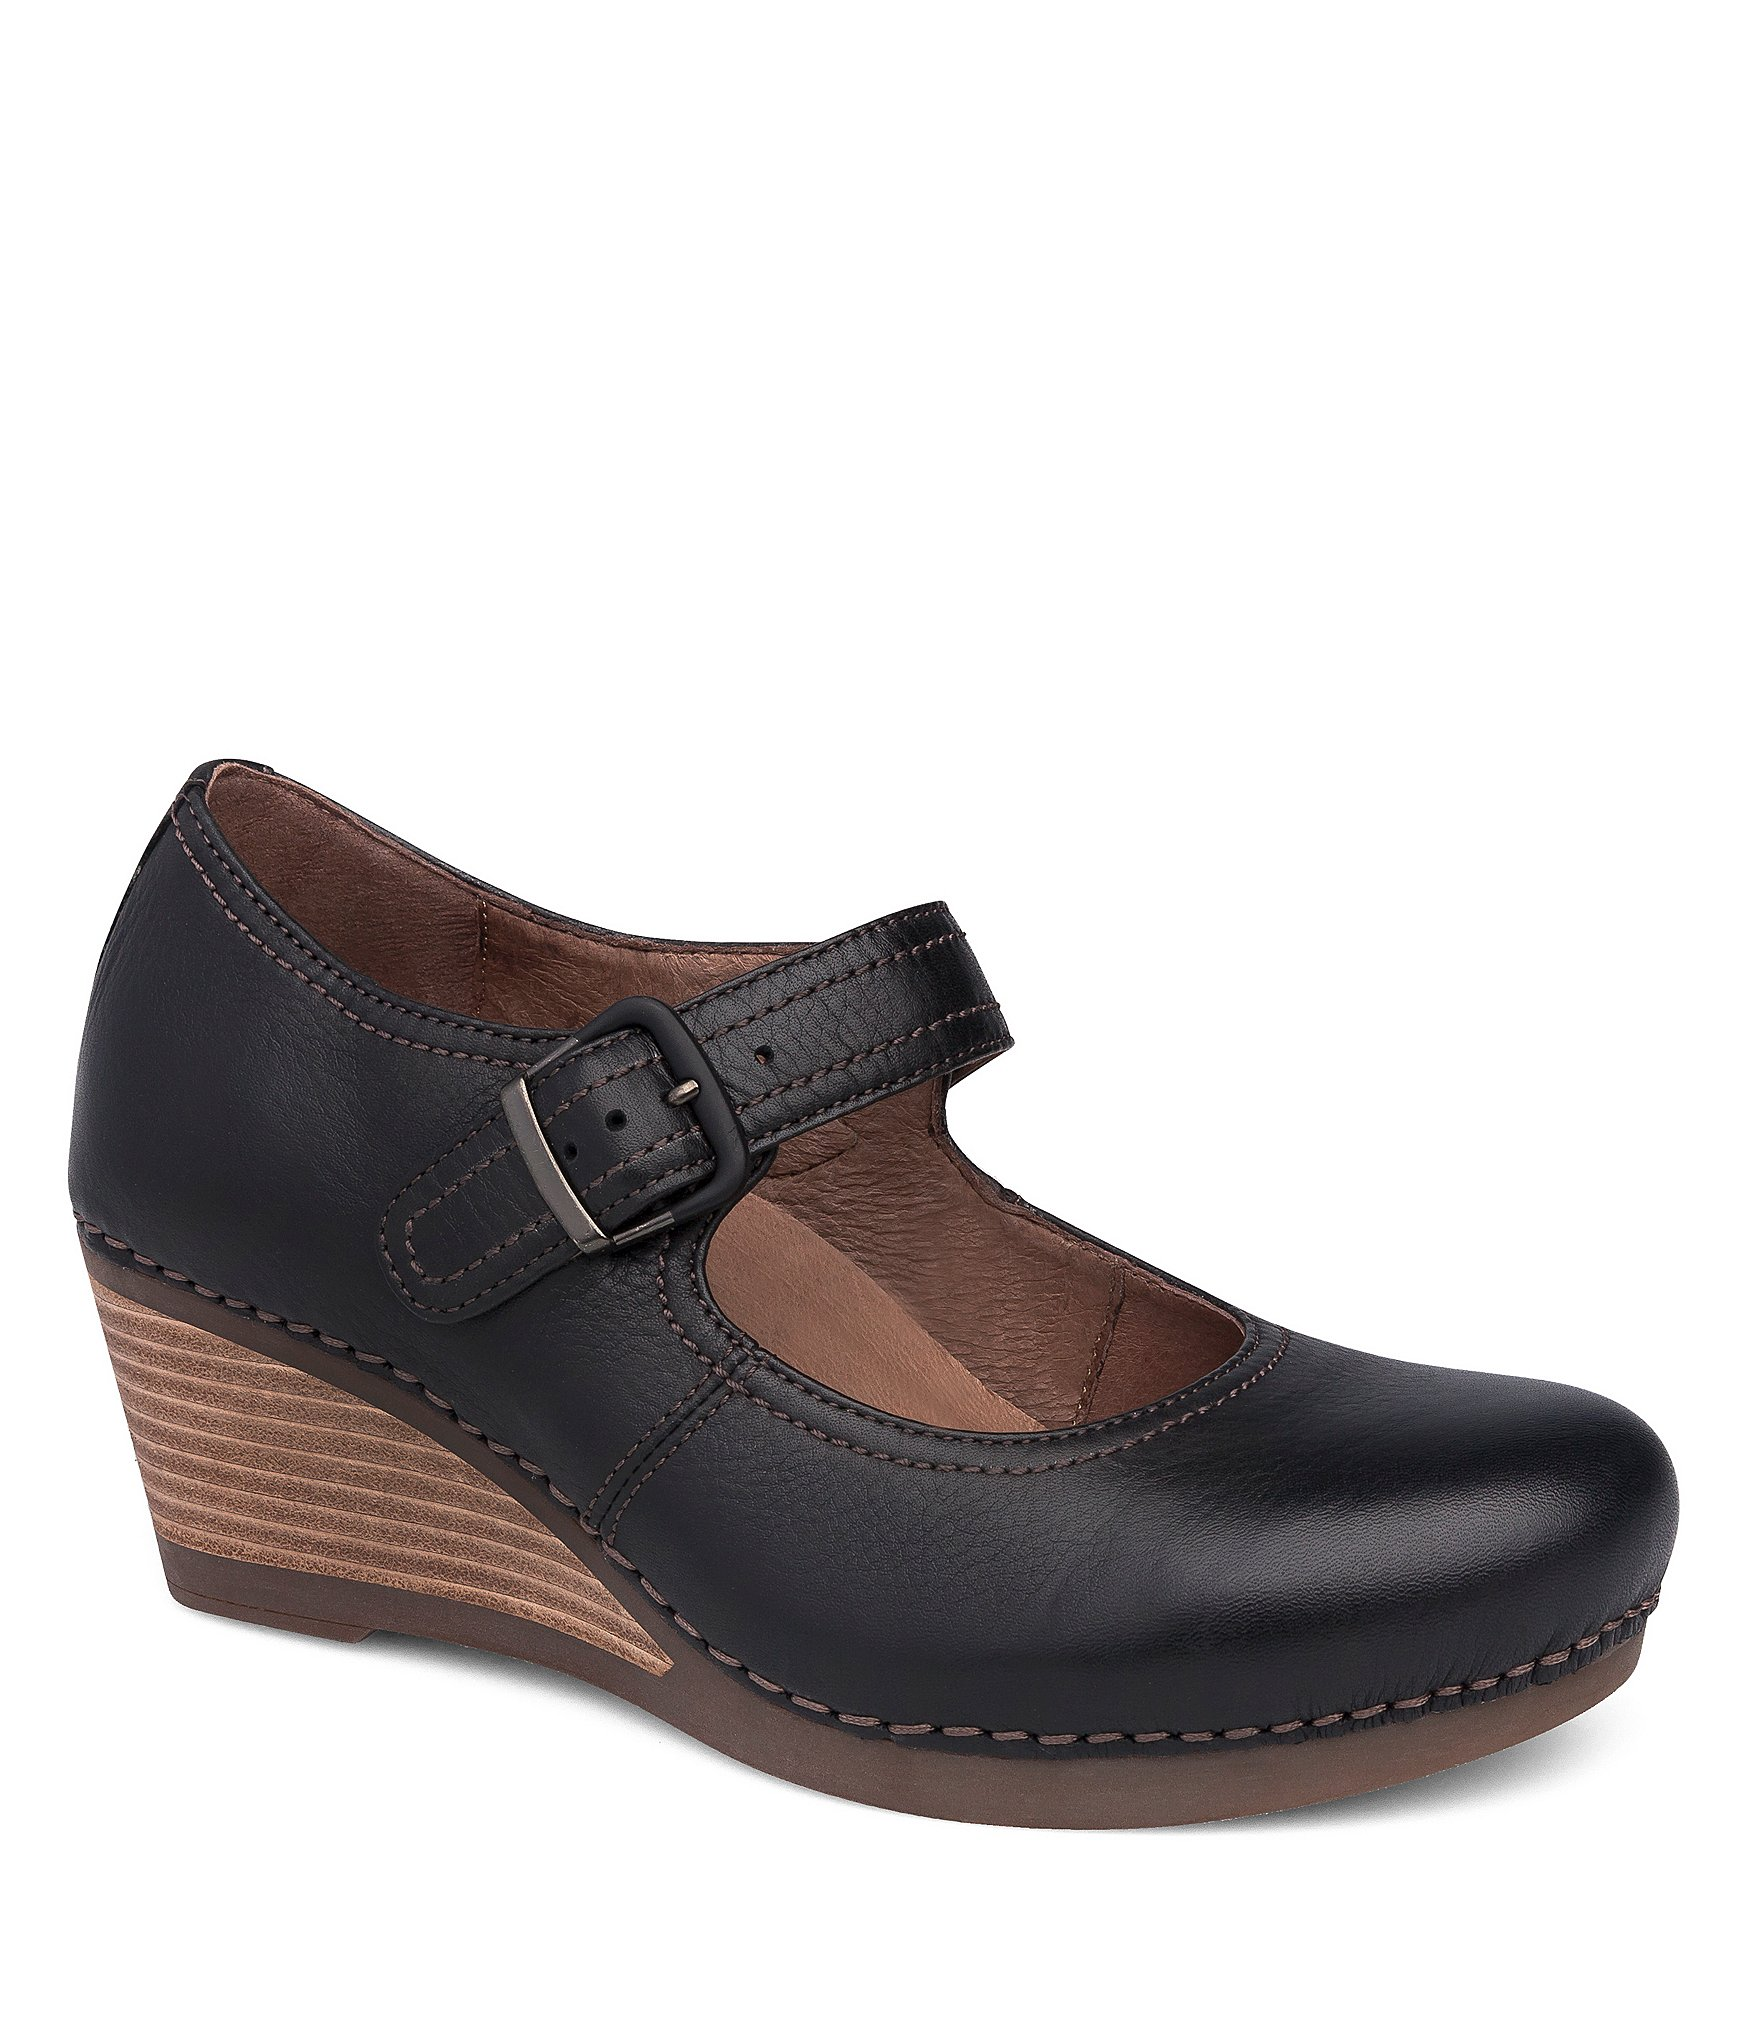 Dansko Shoes For Sale In Canada